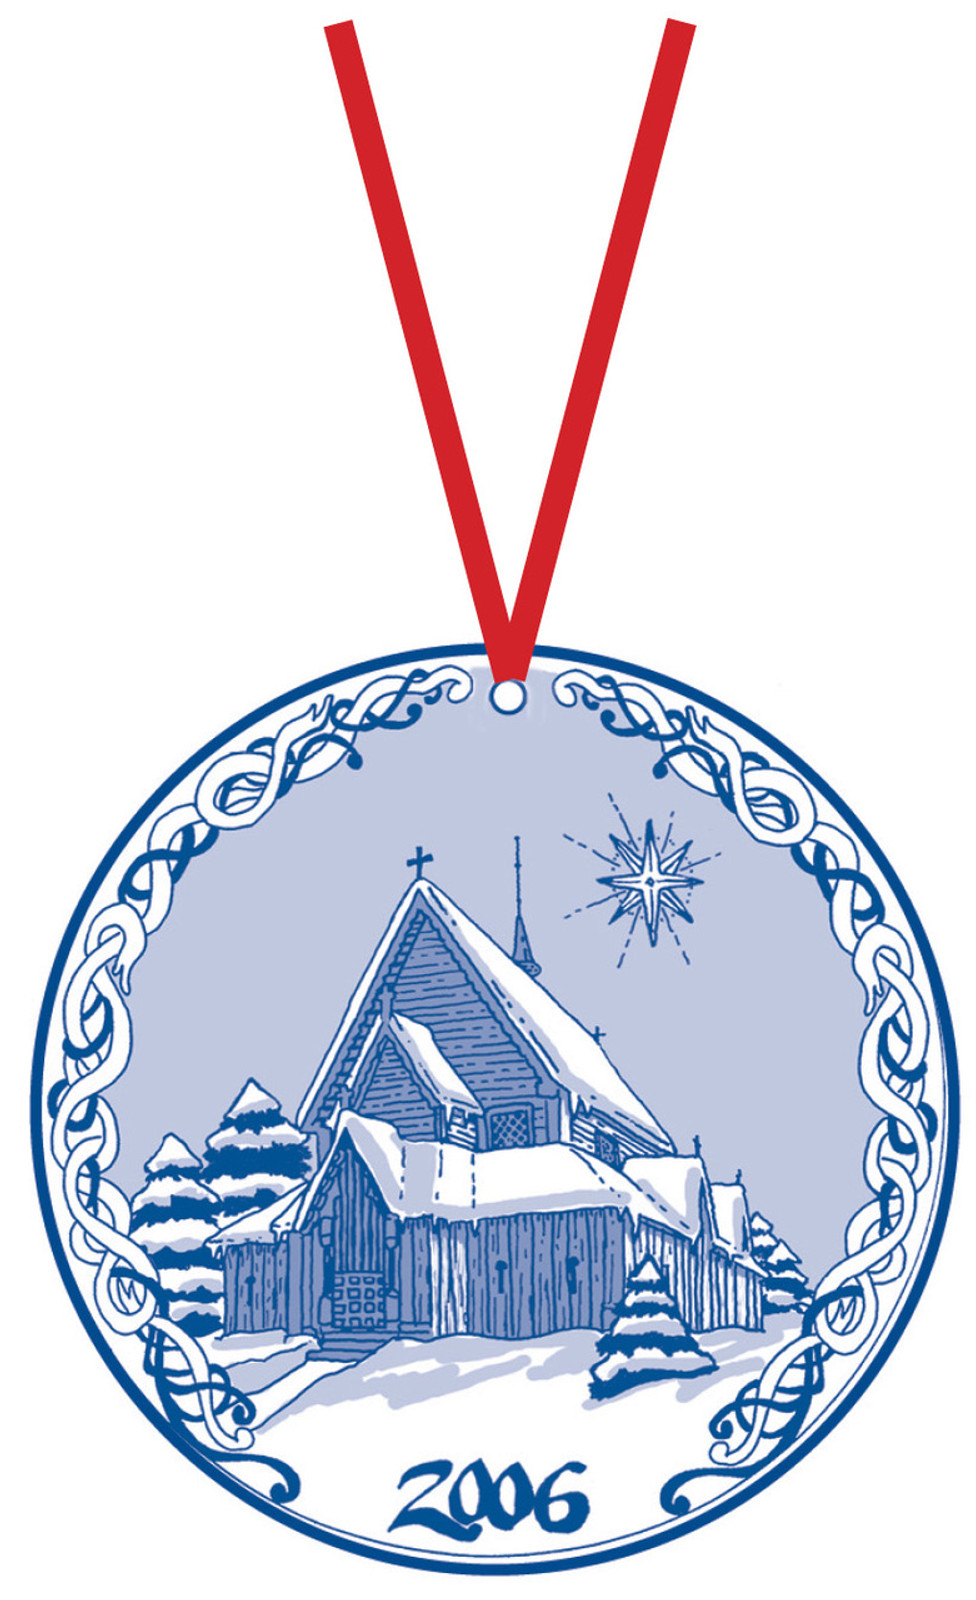 2006 Stav Church Ornament - Reinli. Made by Norse Traditions and available at The Nordic Shop.